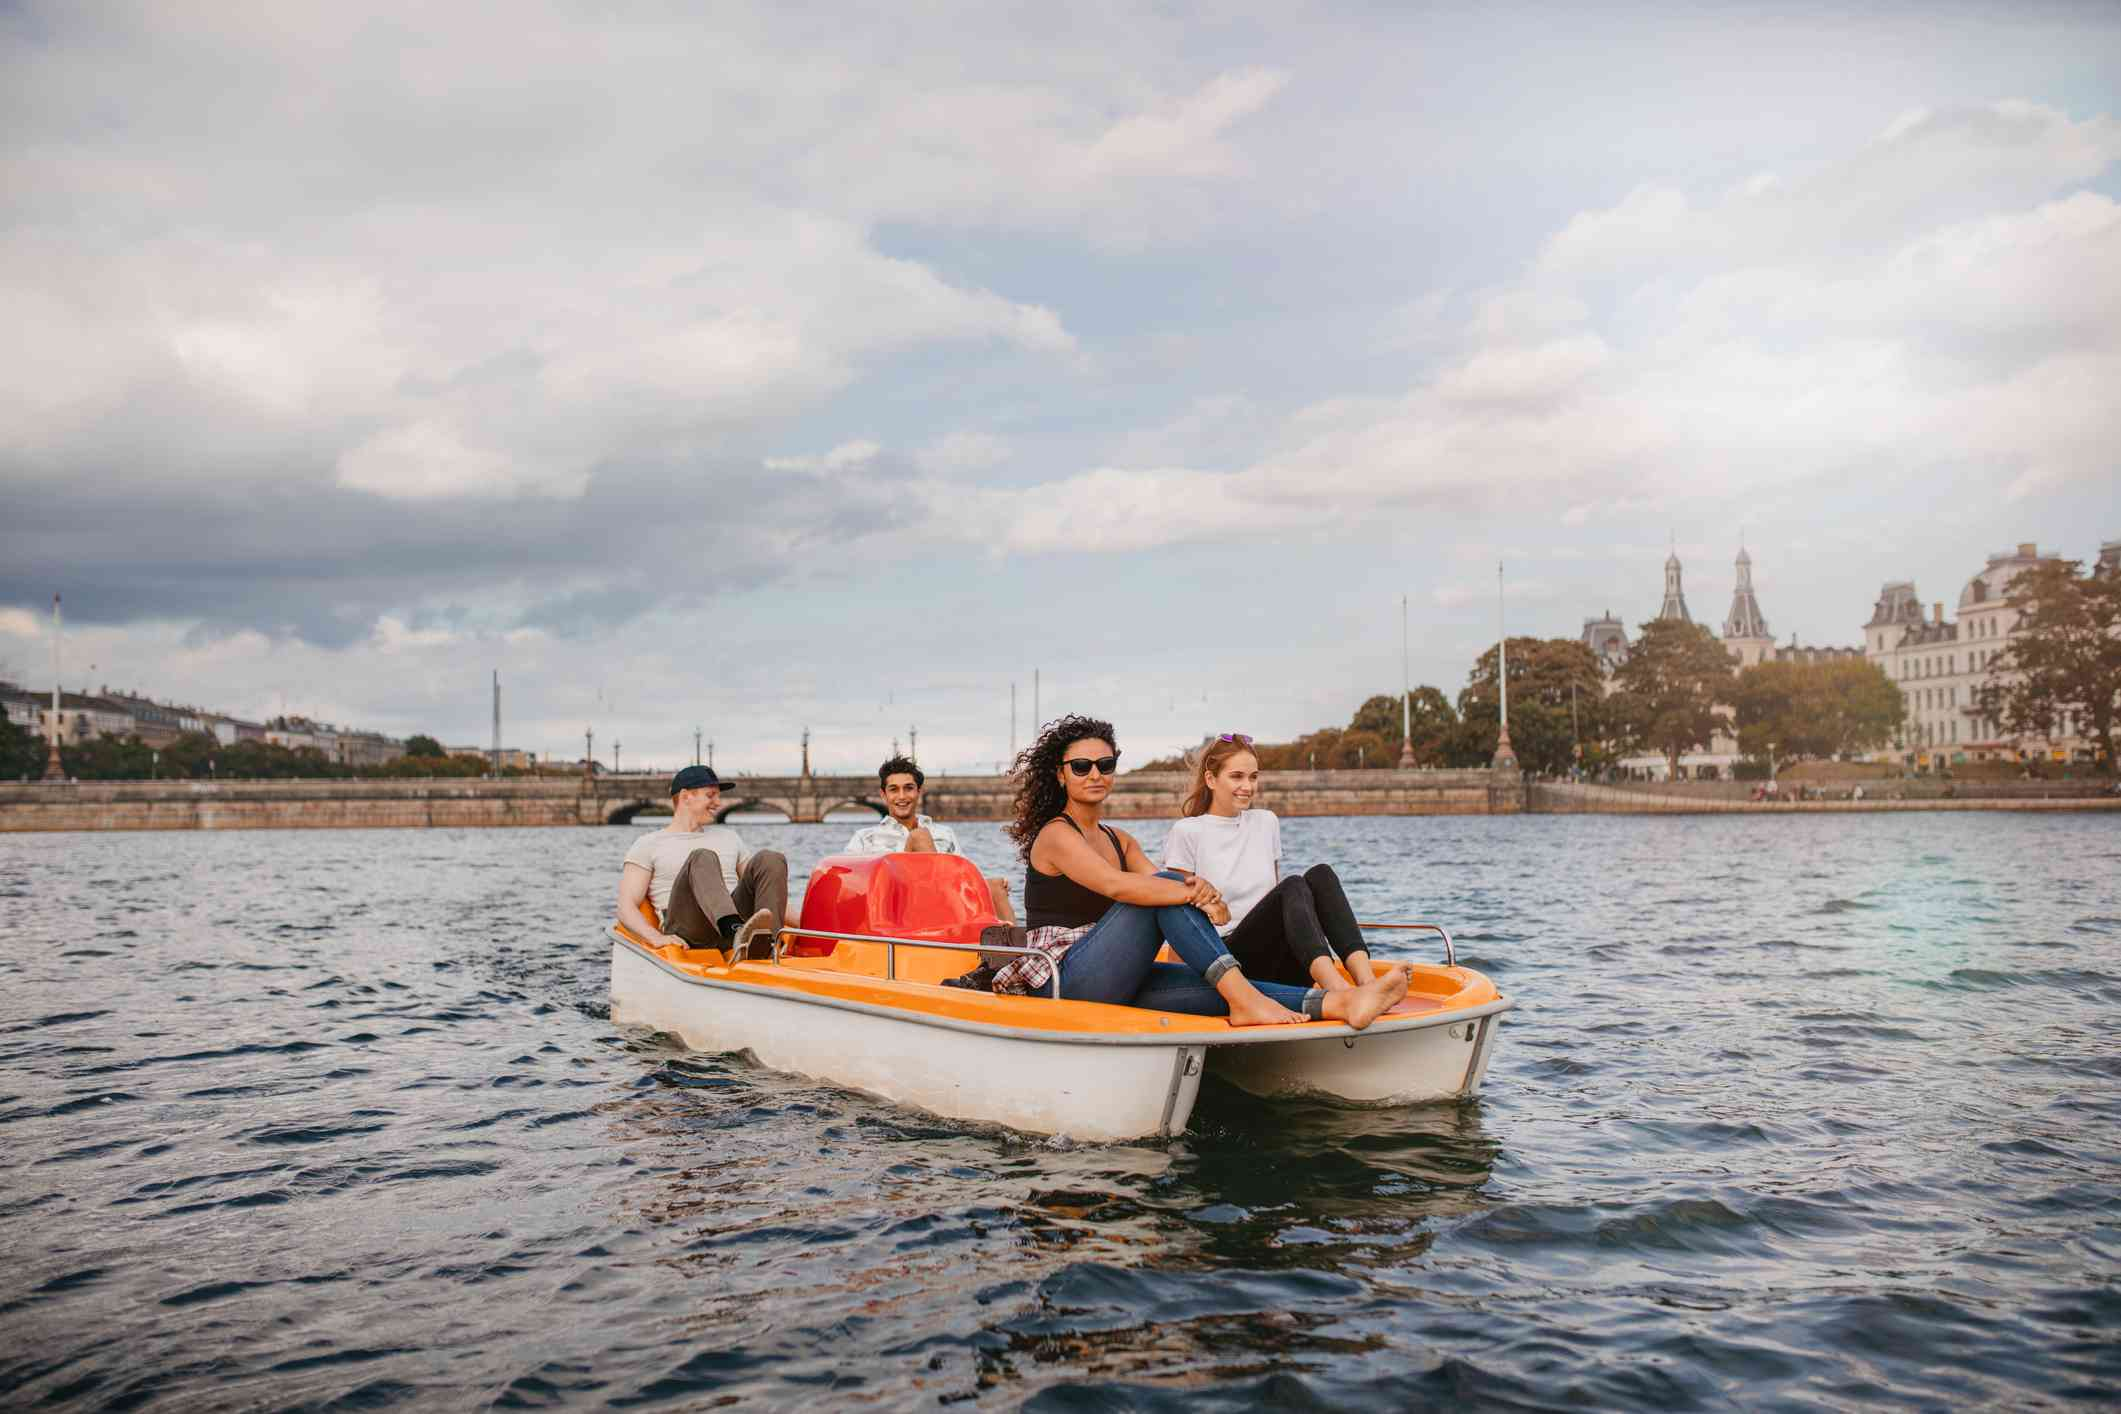 Two men pedaling a pedal boat on a lake while two women sit up front